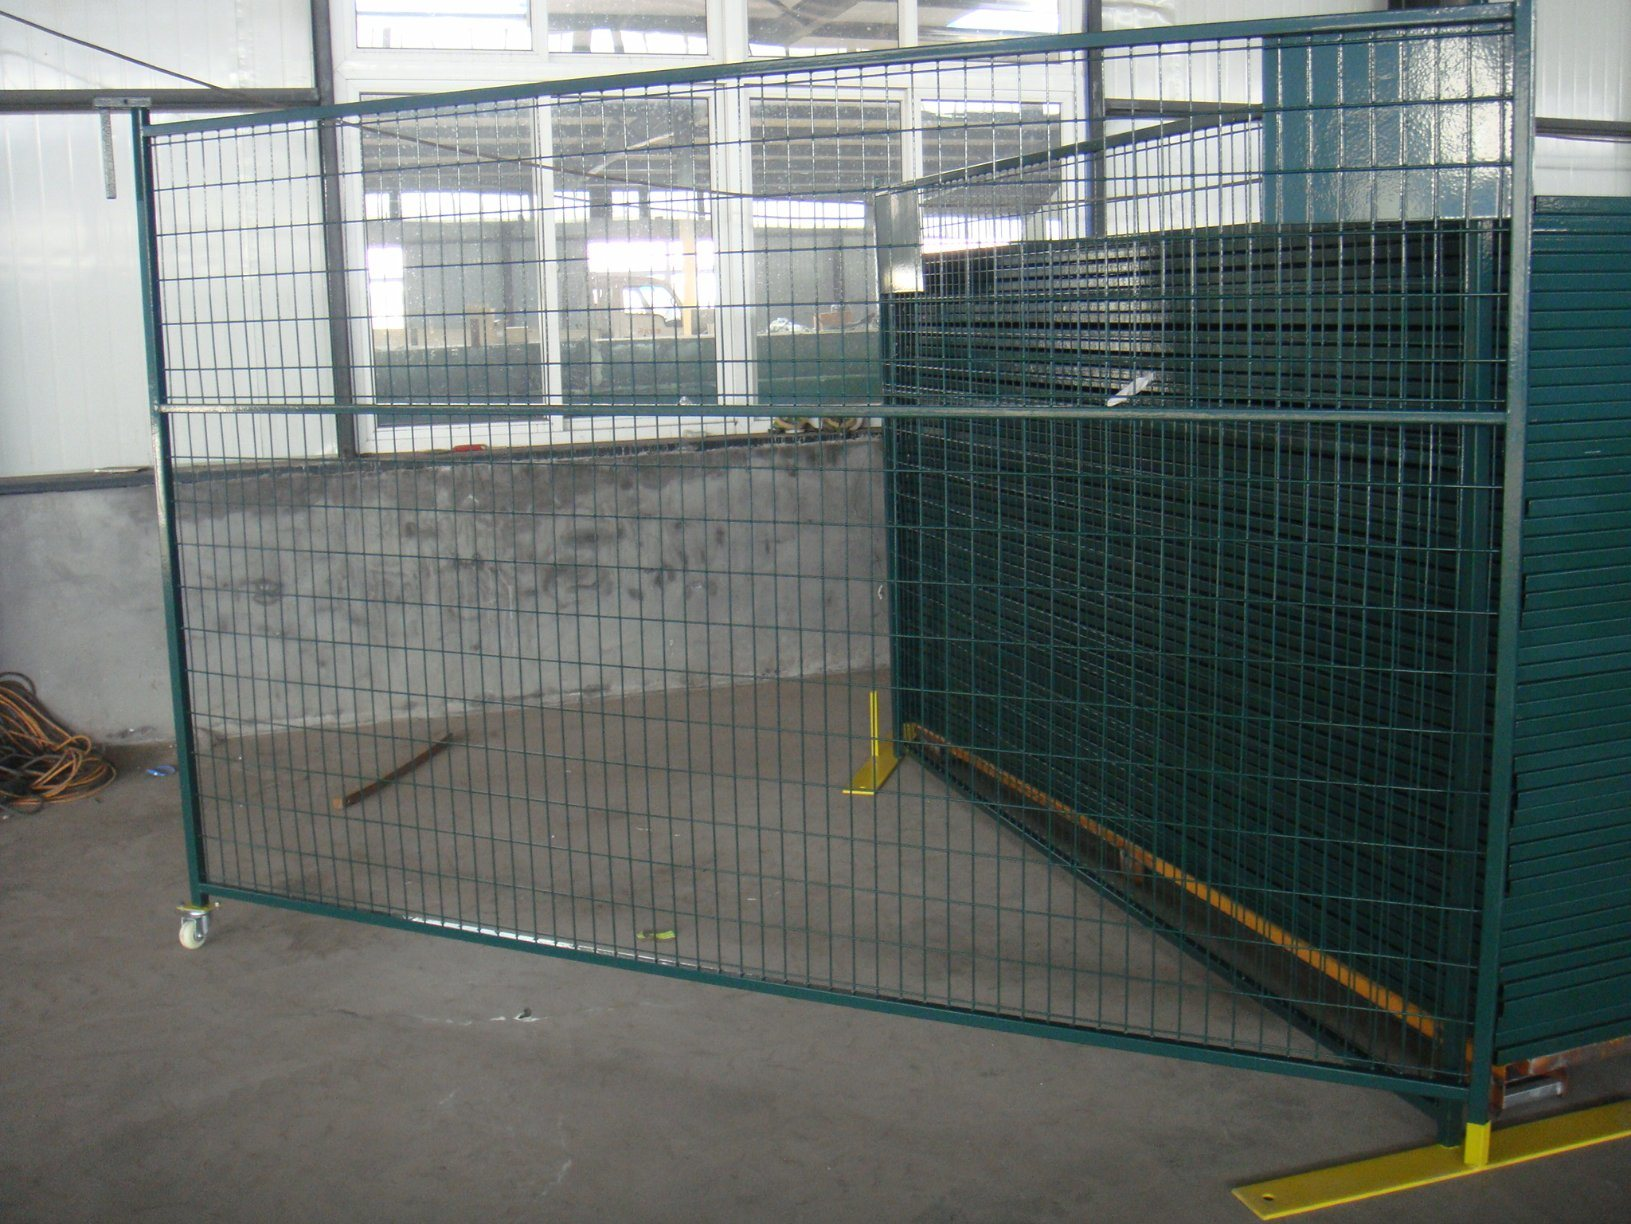 Temporary Security Construction Fence Panels 6foot X 10foot Outdoor Temp Fence Panels